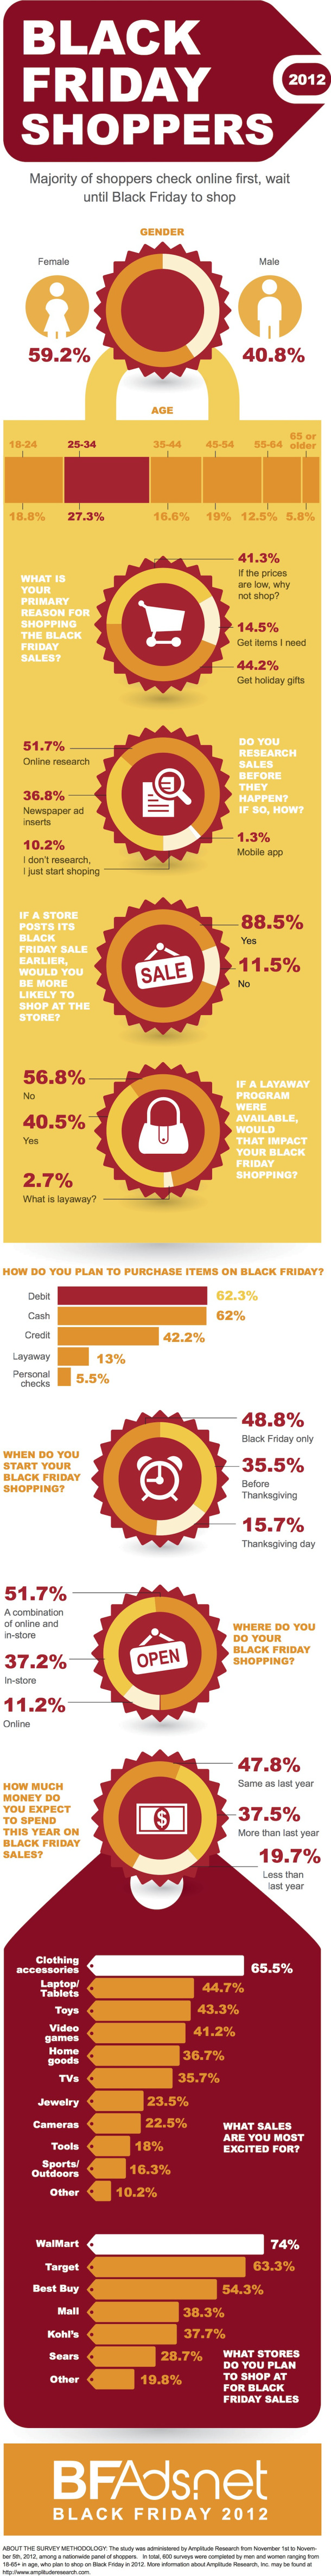 Black Friday shoppers 2012